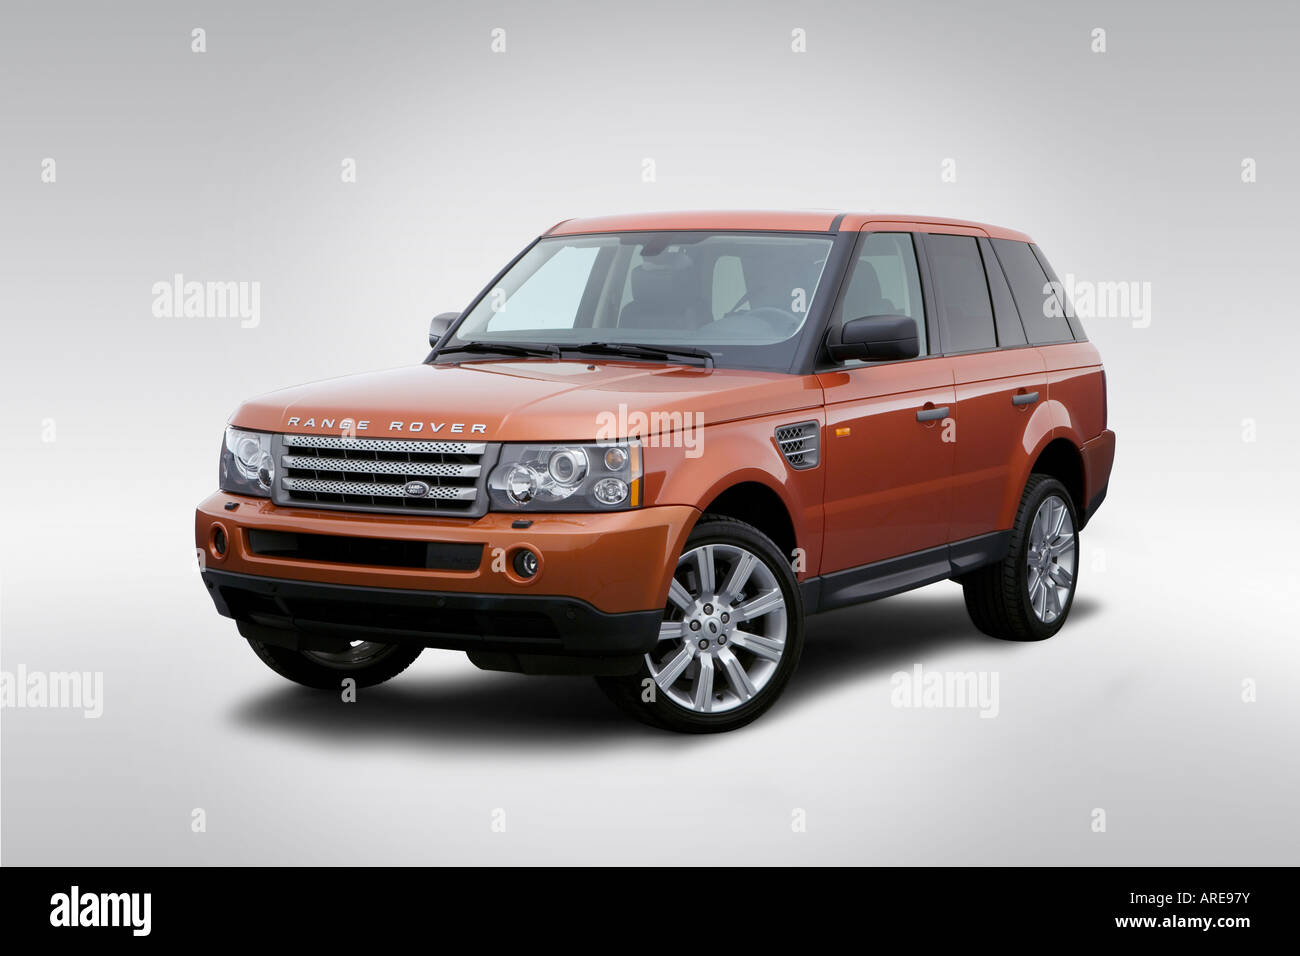 https://c8.alamy.com/comp/ARE97Y/2006-land-rover-range-rover-sport-supercharged-in-orange-front-angle-ARE97Y.jpg